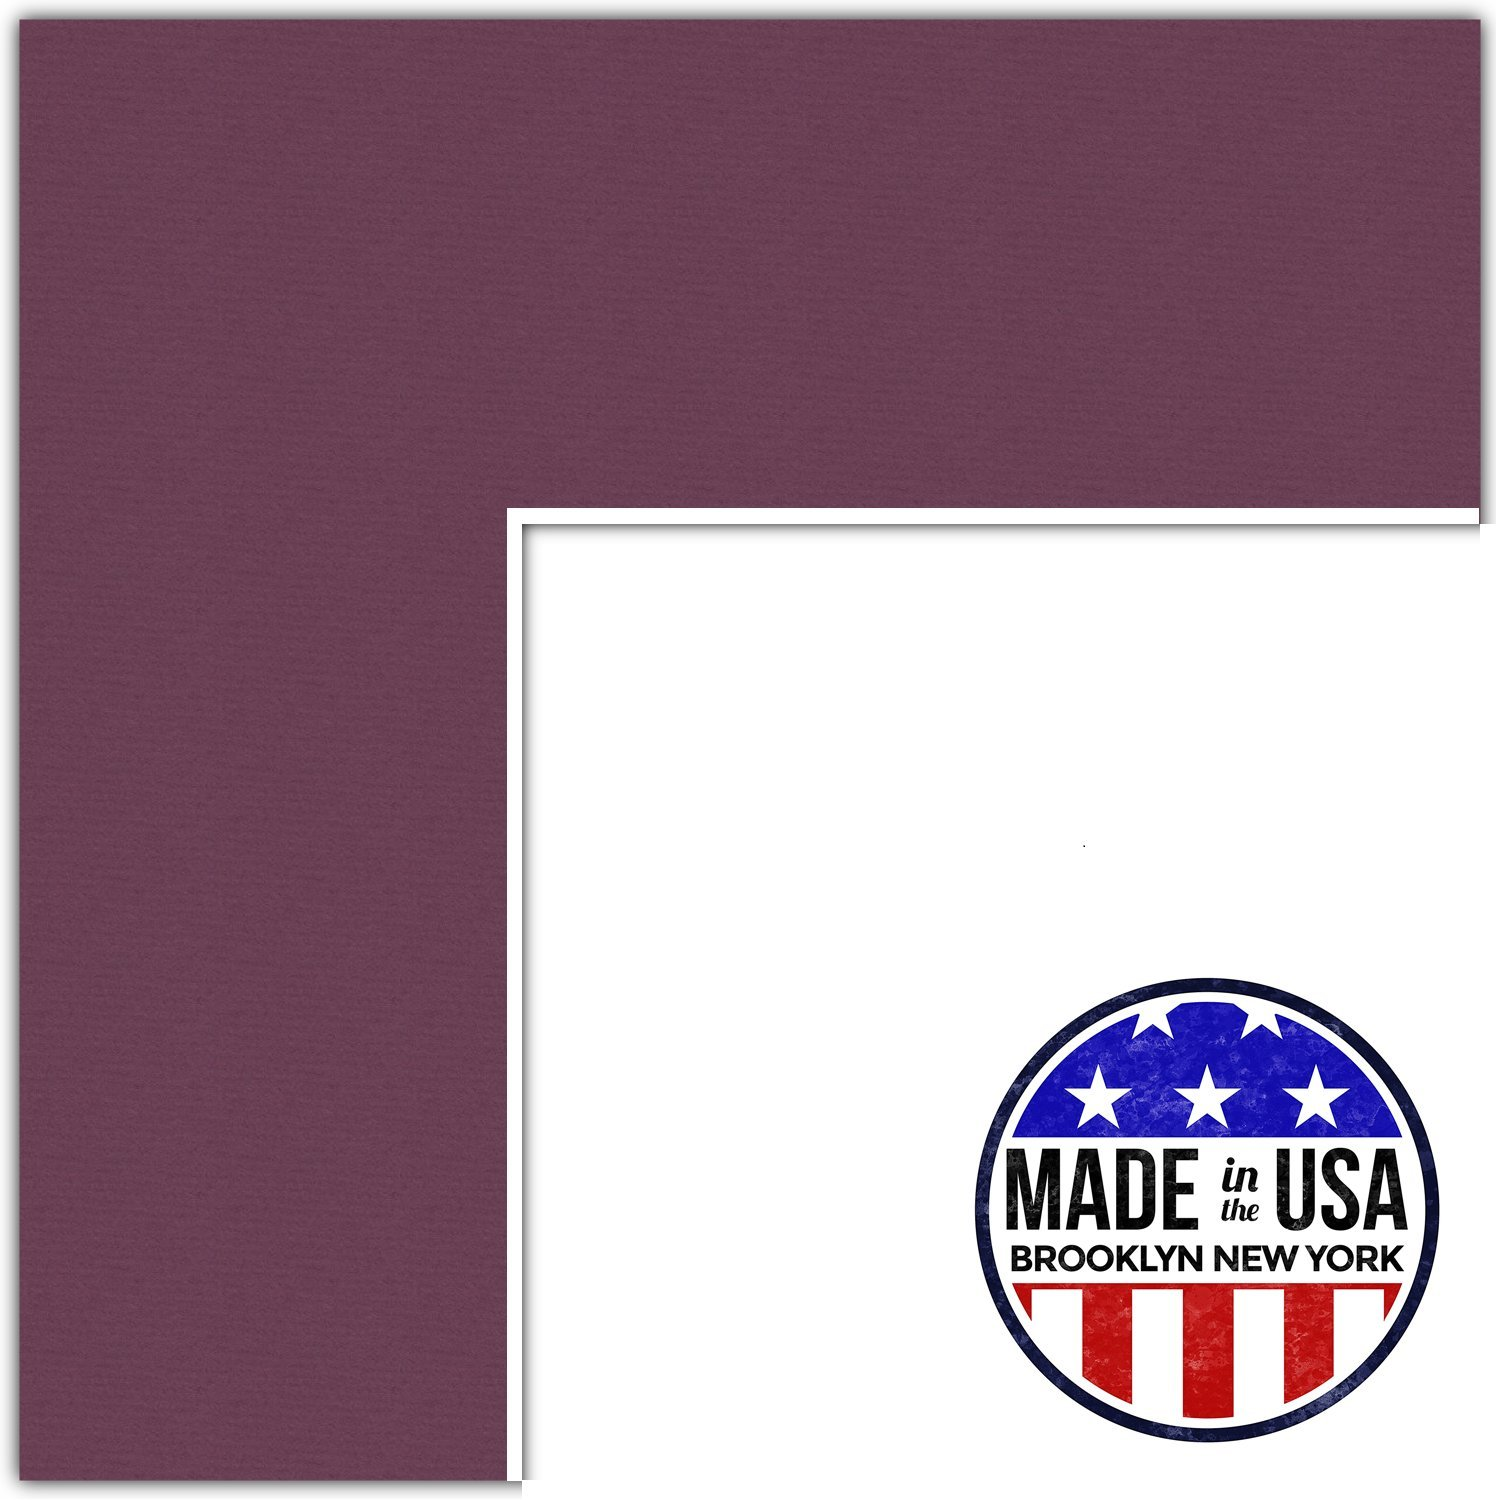 10x33 Raspberry/Ruby Custom Mat for Picture Frame with 6x29 opening size (Mat Only, Frame NOT Included)